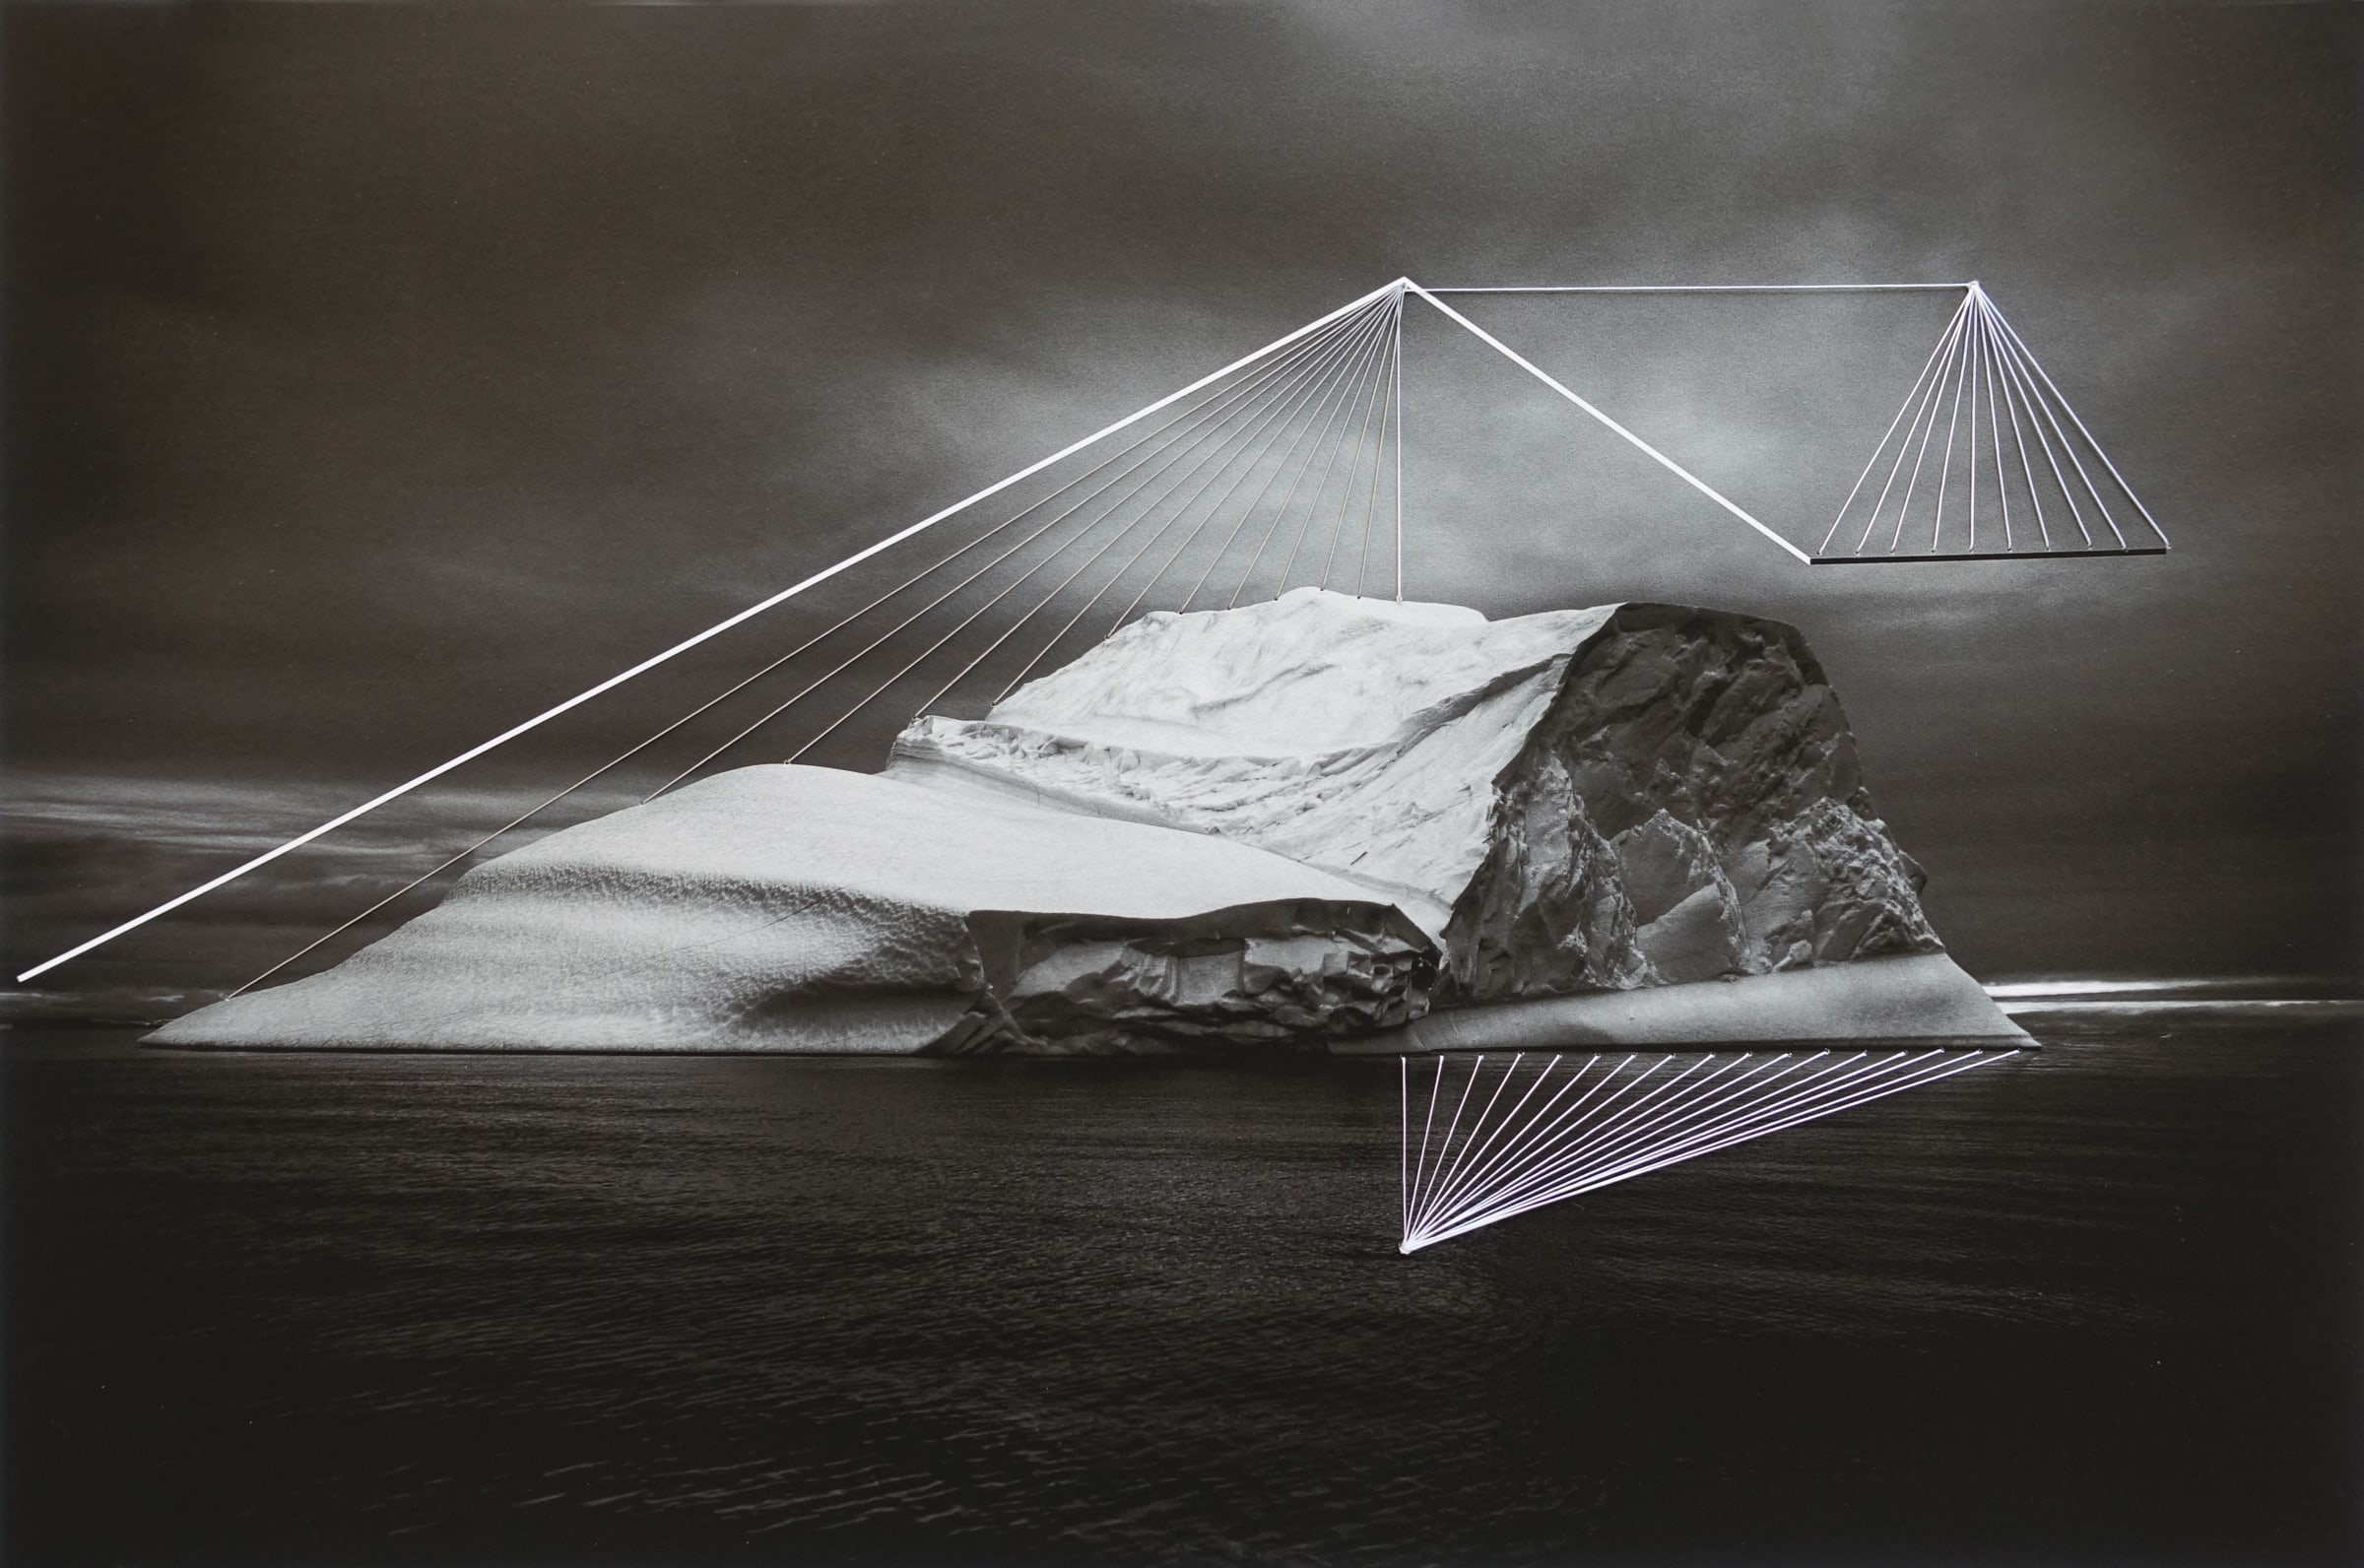 """<span class=""""link fancybox-details-link""""><a href=""""/artists/52-adriene-hughes/works/891-adriene-hughes-threaded-iceberg-bw-no.-1-2019/"""">View Detail Page</a></span><div class=""""artist""""><strong>Adriene Hughes</strong></div> <div class=""""title""""><em>Threaded Iceberg BW No. 1</em>, 2019</div> <div class=""""medium"""">Archival Pigment Print on Cotton Rag with Cotton Quilting Thread<br /> Print only<br /> Unique</div> <div class=""""dimensions"""">20.3 x 30.5 cm<br /> 8 x 12 in</div><div class=""""copyright_line"""">Copyright Adriene Hughes<br></div>"""